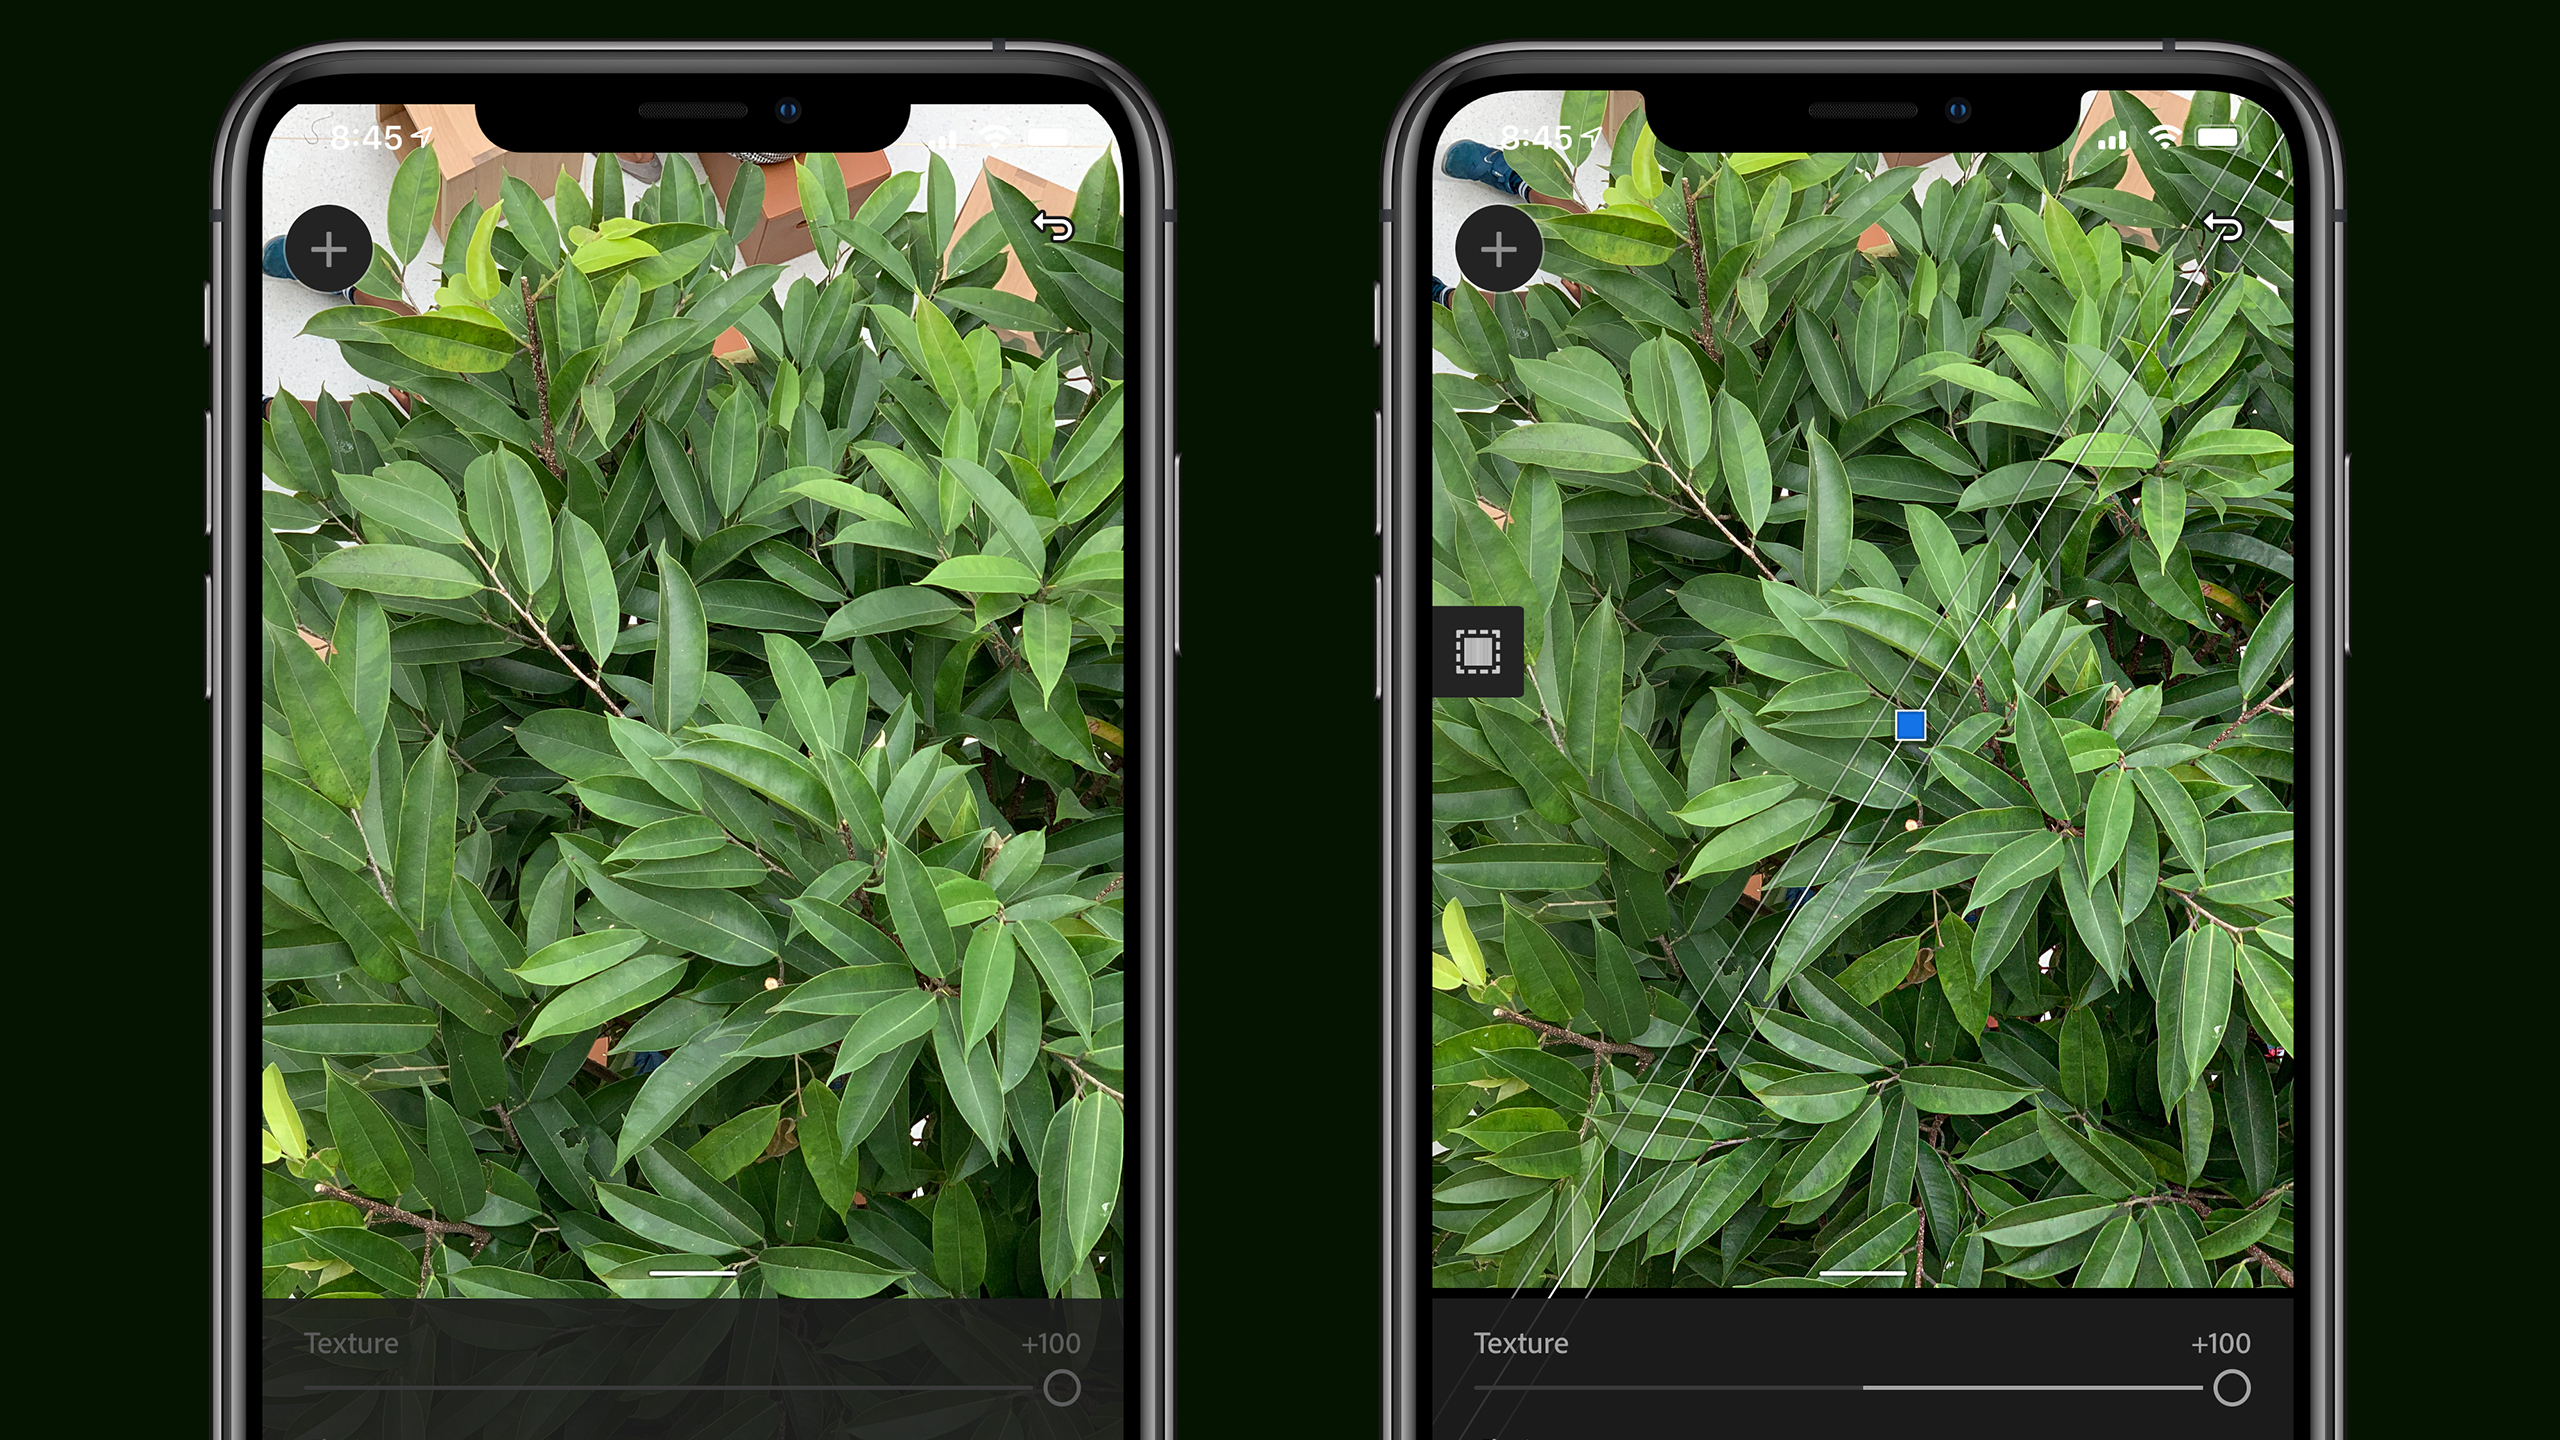 Adobe Lightroom's new Texture tool enhances individual details without impacting your entire photo